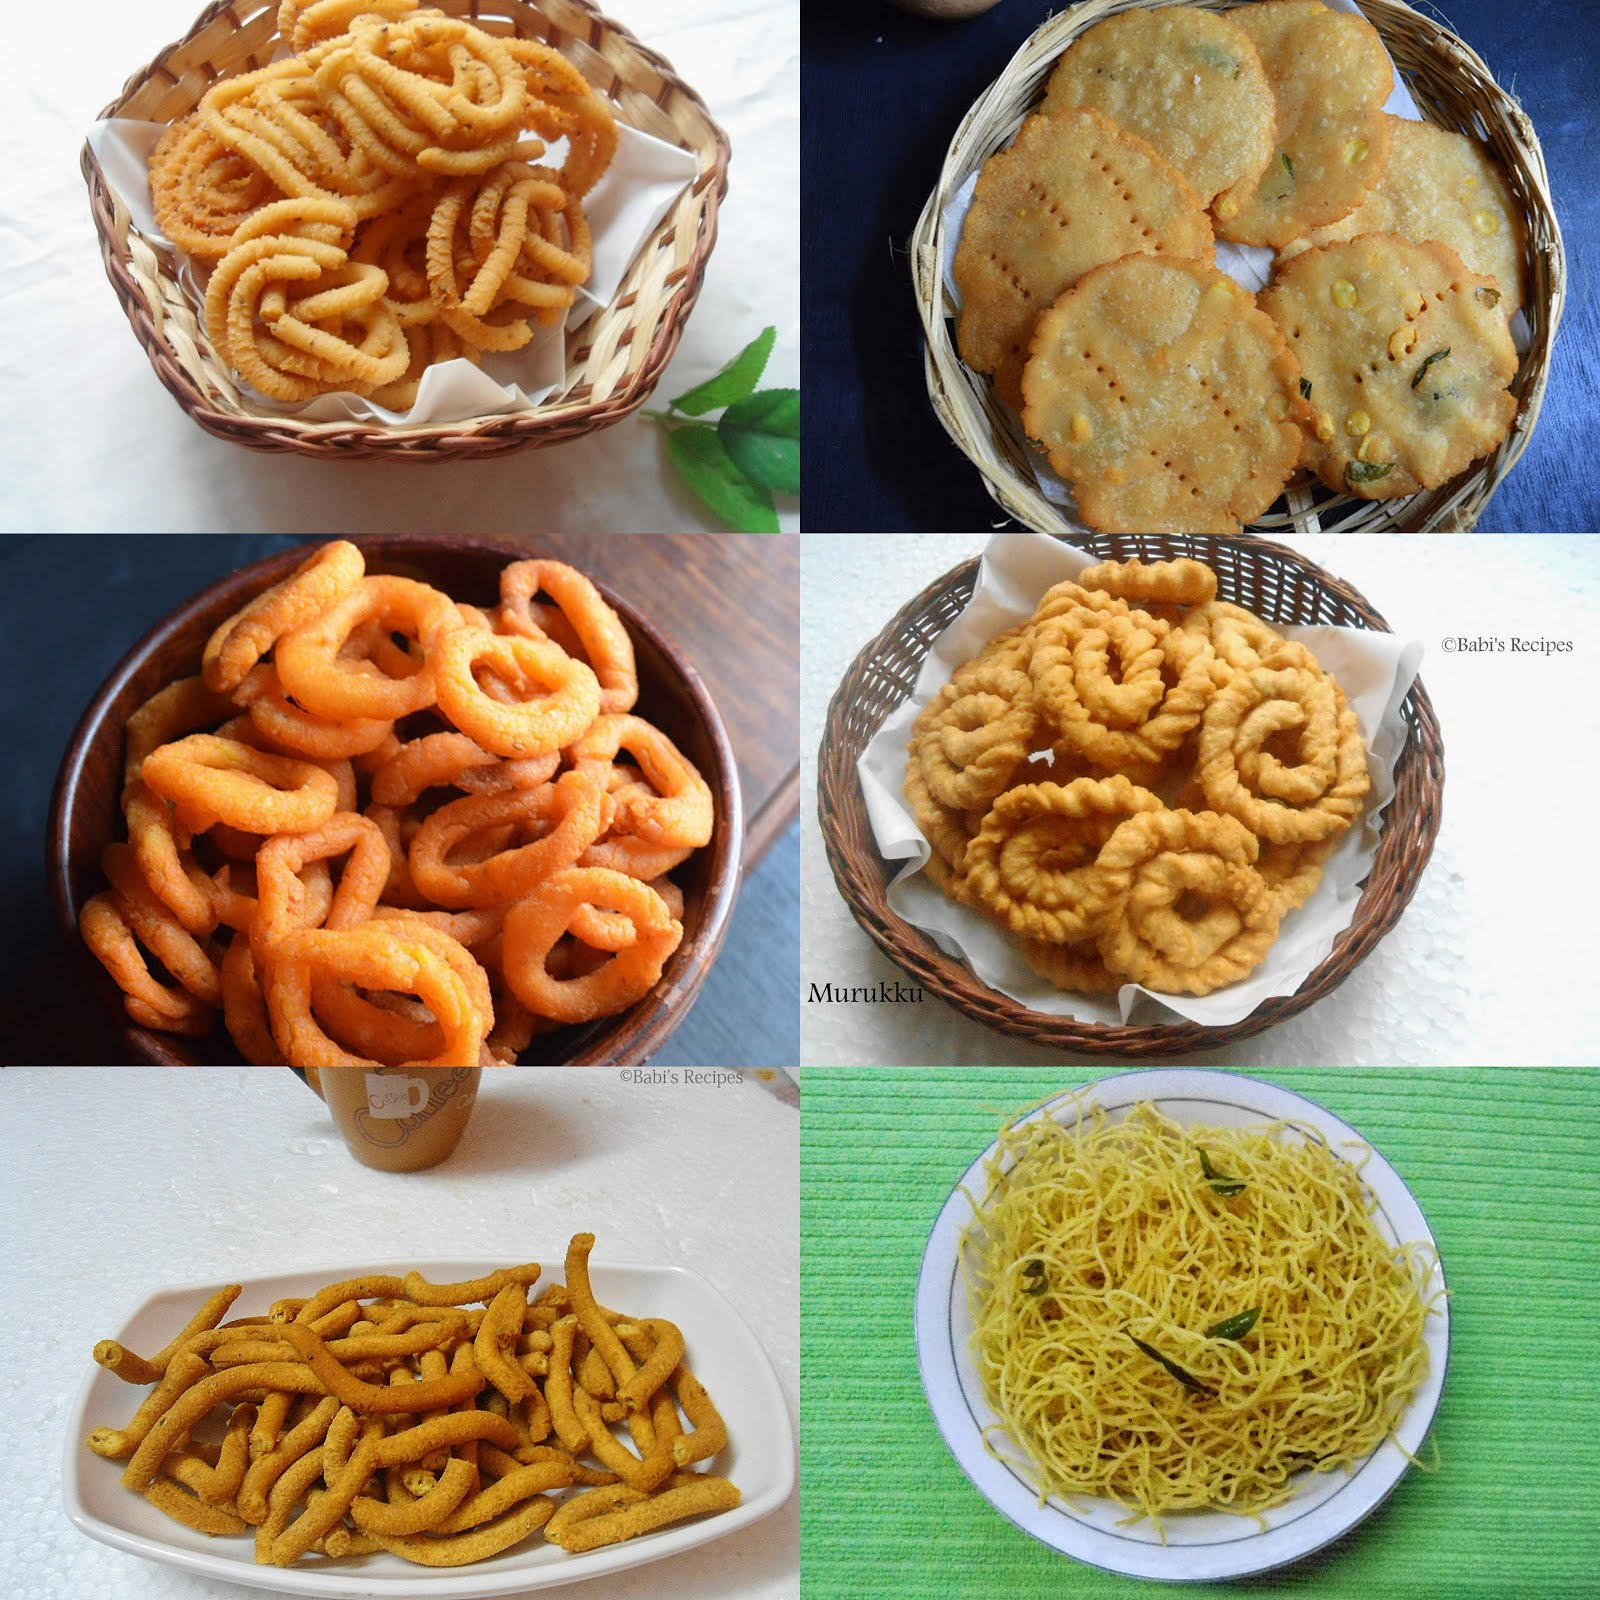 Savory Snack for Diwali